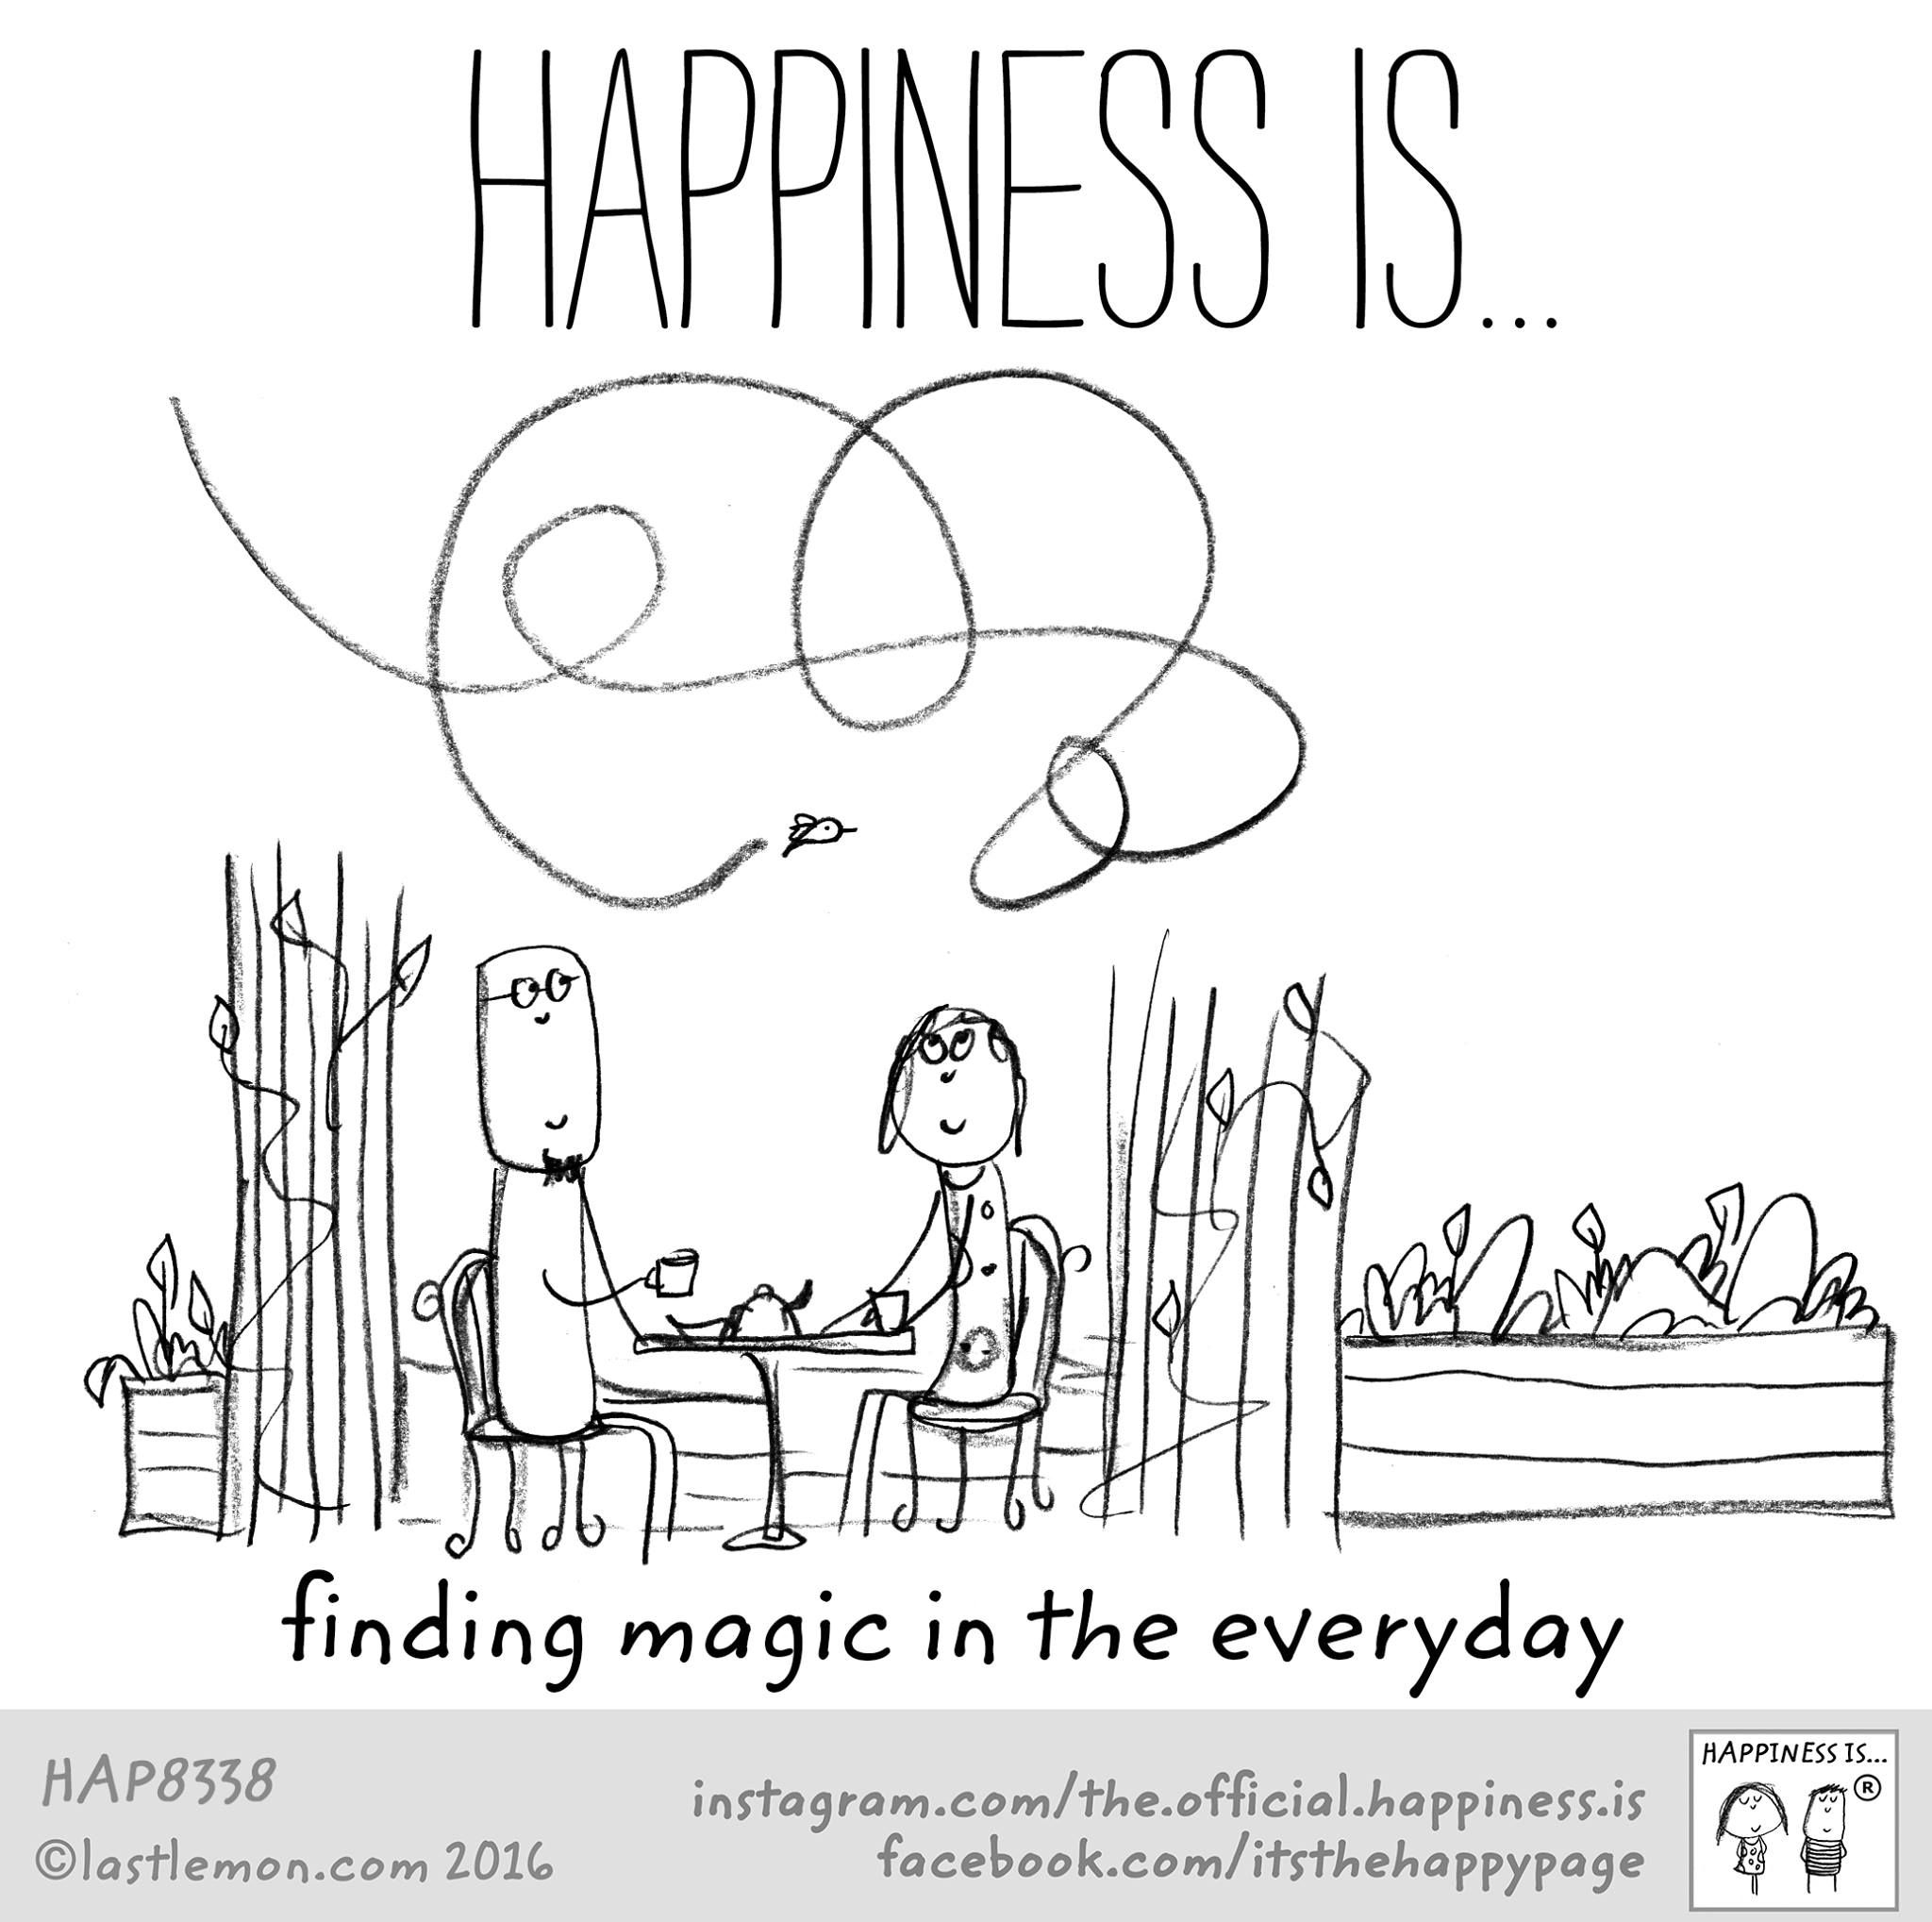 Happiness is finding the magic in the everyday